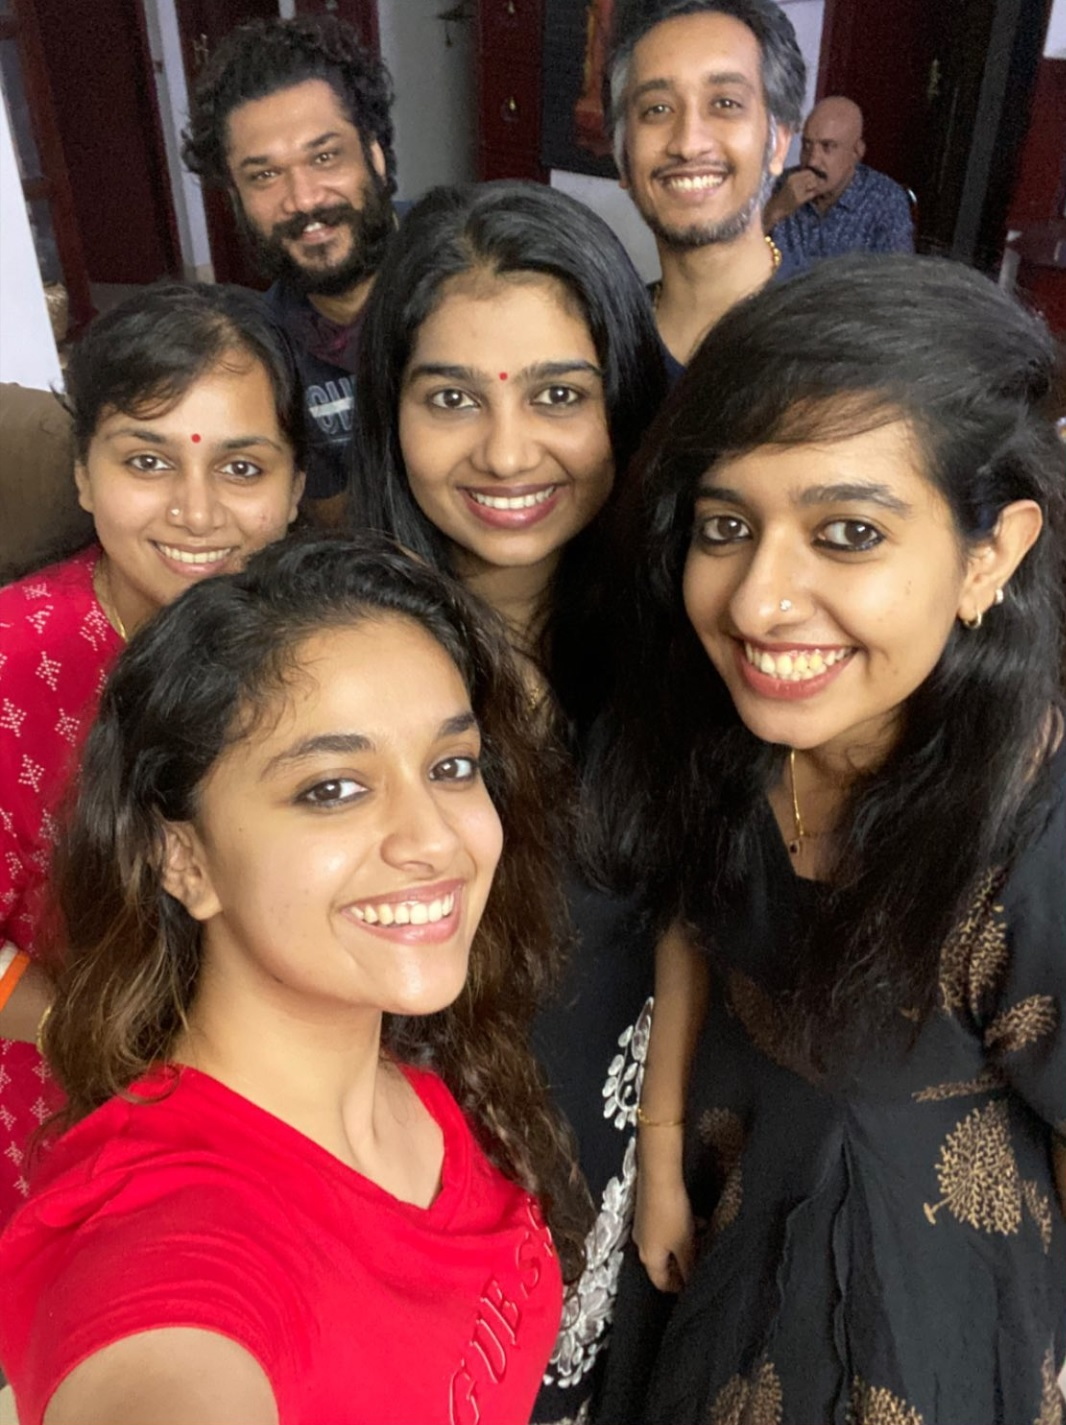 Keerthy Suresh in Red T-Shirt with Cute Smile with her Besties Selfie